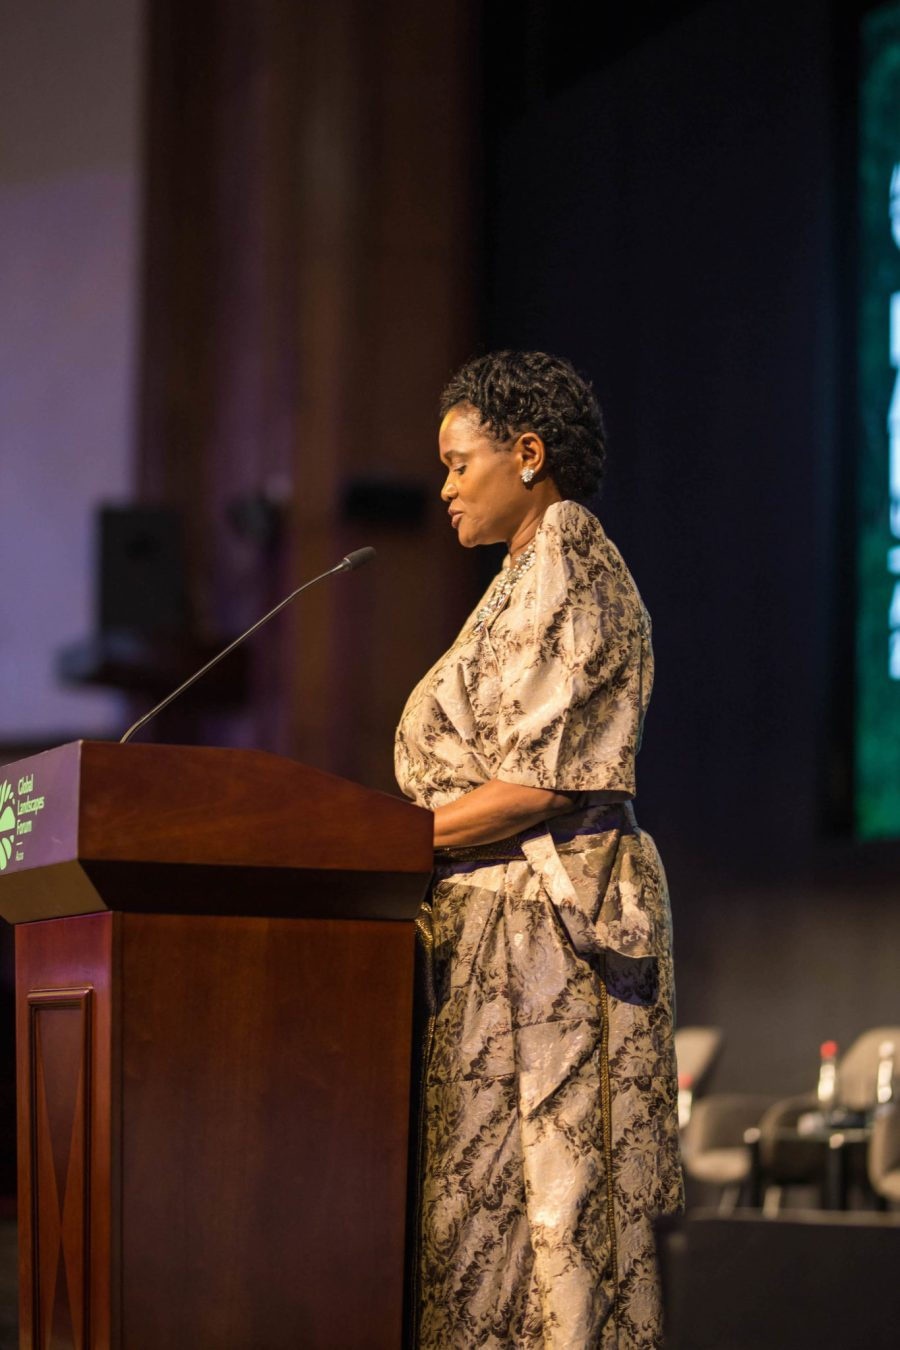 Her royal highness Sylvia Nagginda, the Nnabagereka (Queen) of Buganda, spoke on the importance of culture preservation in restoration. Musah Botchway, Global Landscapes Forum